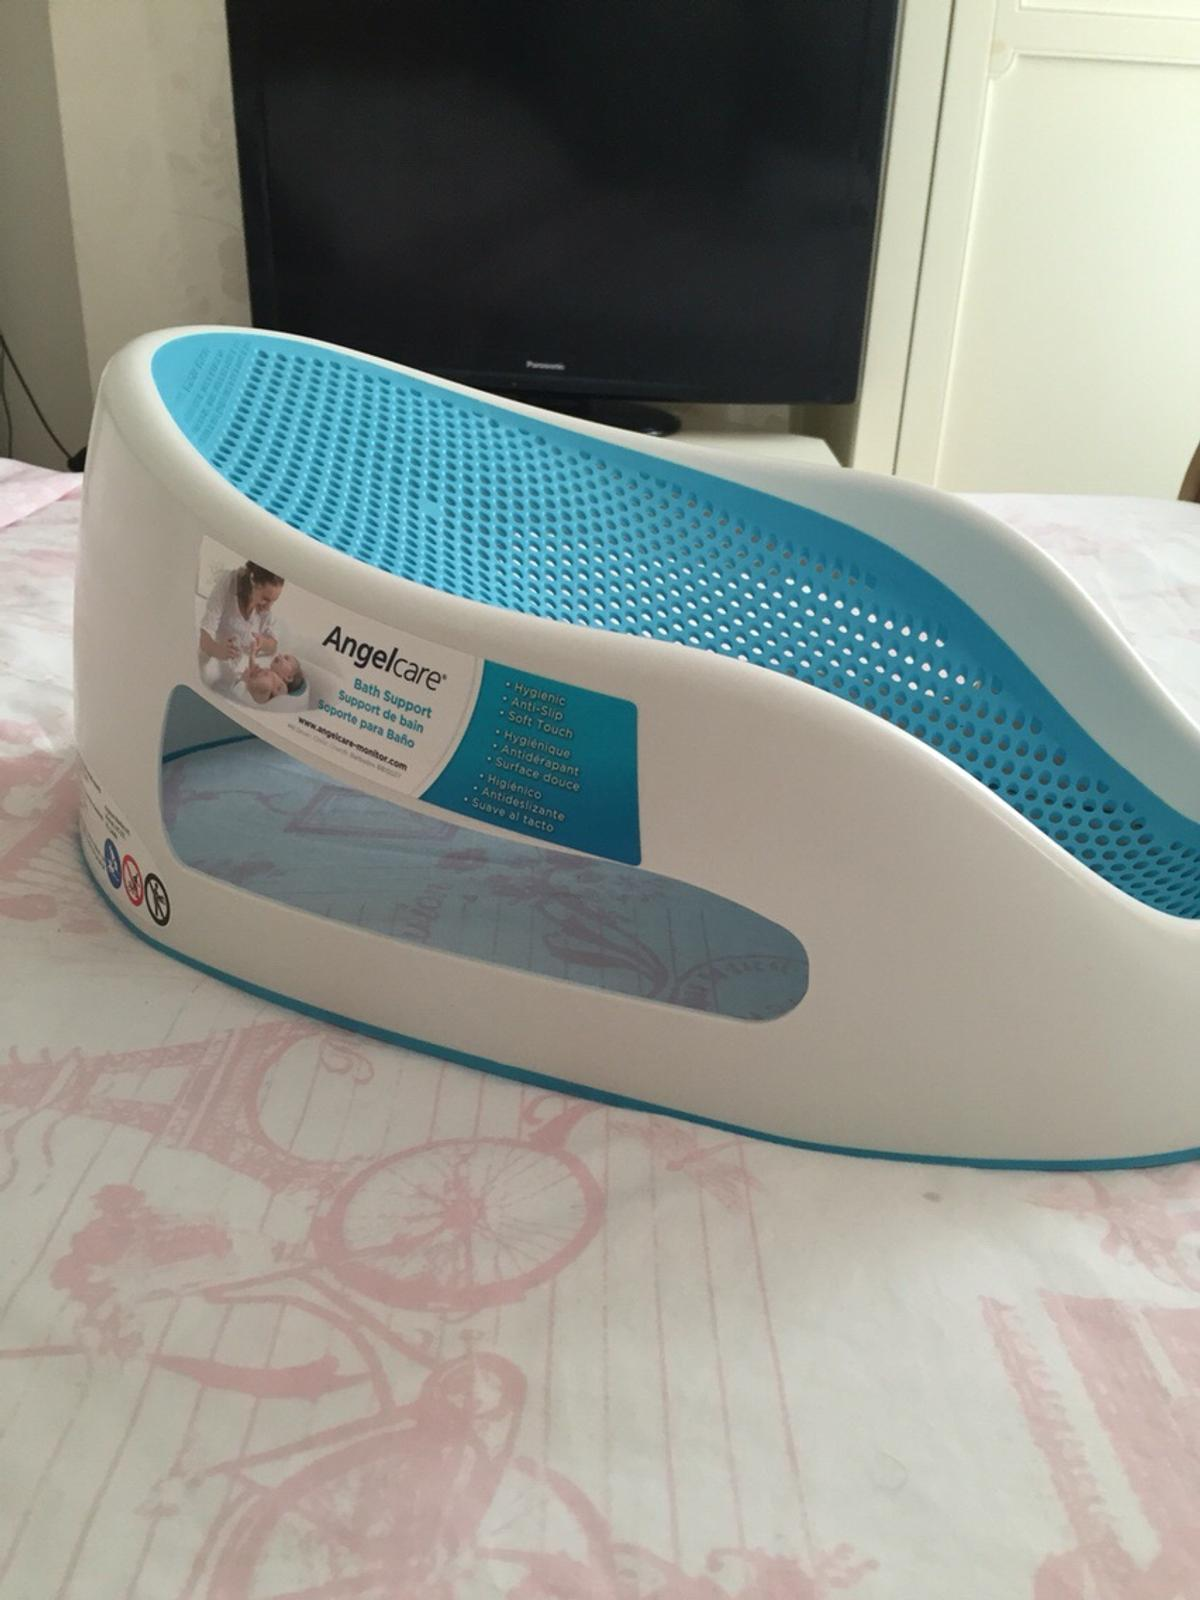 db50dadfe3f3 Angelcare baby bath seat in London for £10.00 for sale - Shpock